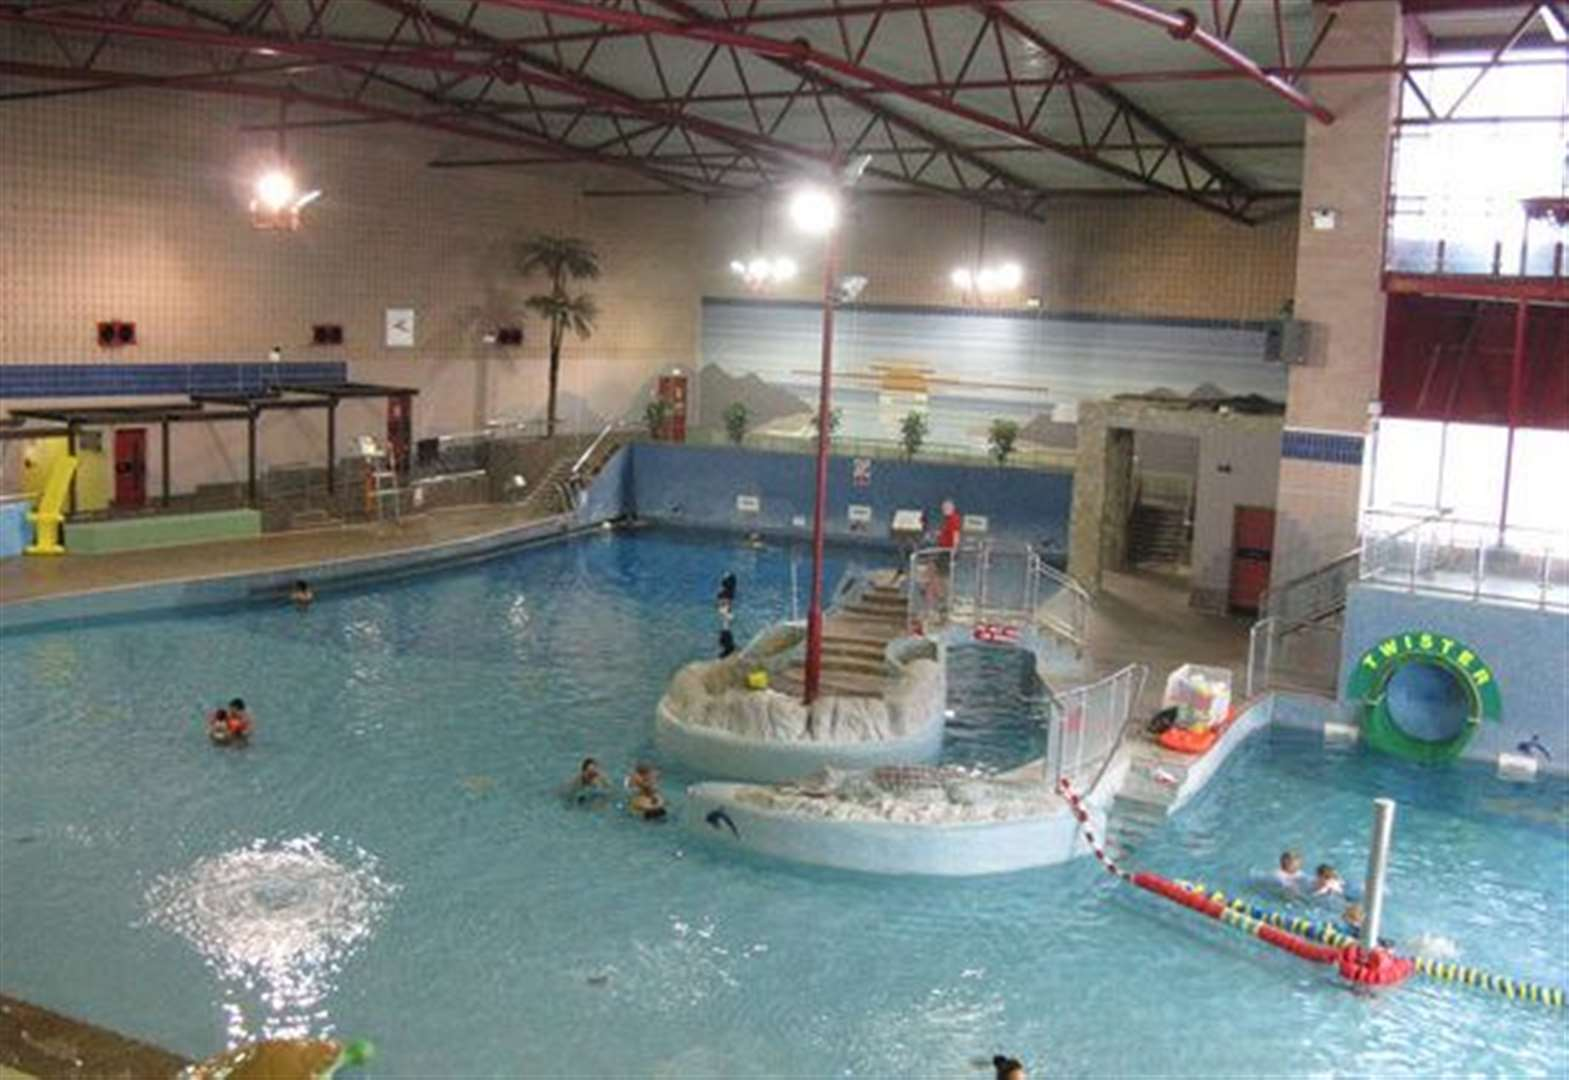 Leisure centre to get £60k refurbishment